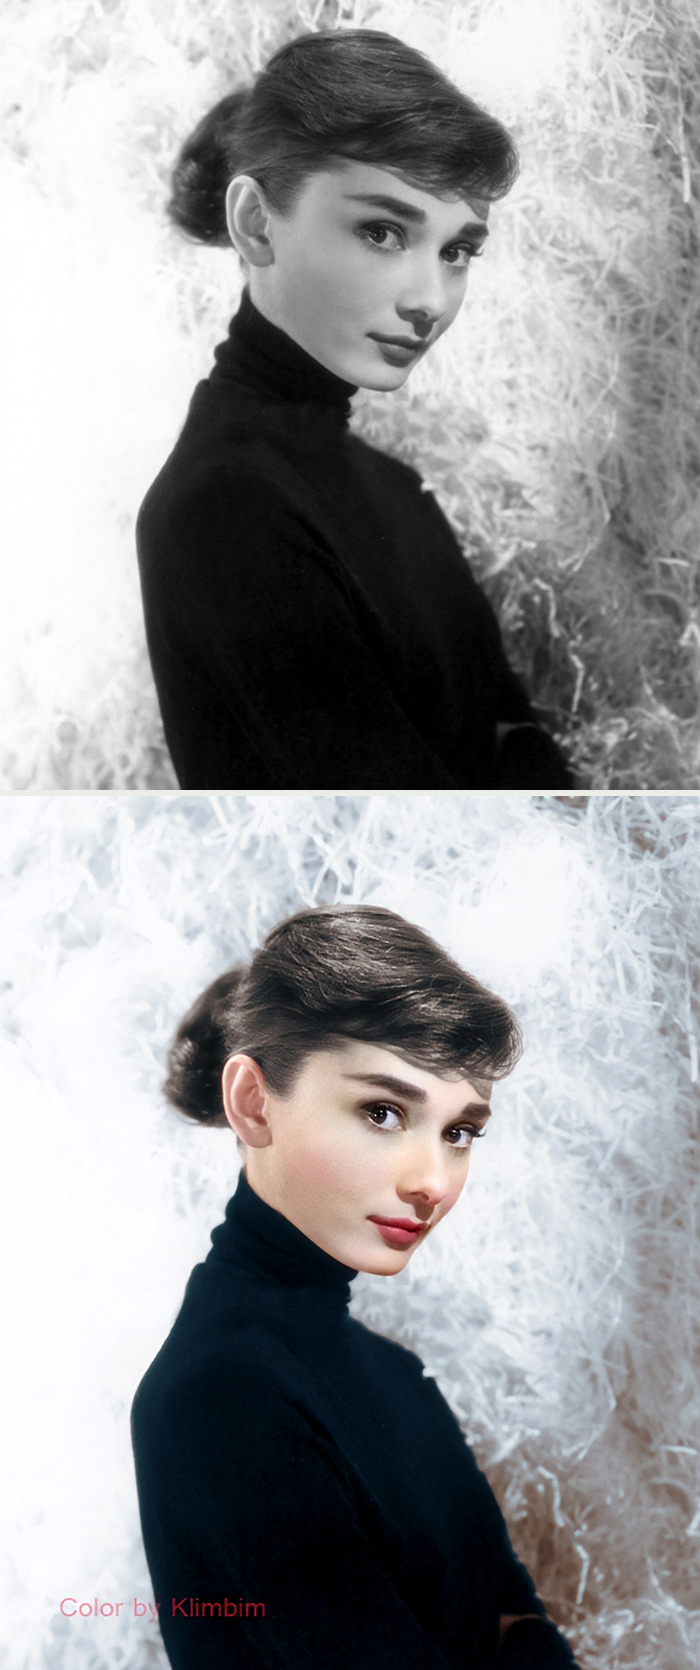 2020-03-This-Russian-artist-impresses-by-giving-vivid-colors-to-photos-of-celebrities-from-the-past-5e679b02883c3-png-700-5e6a10da6cedf